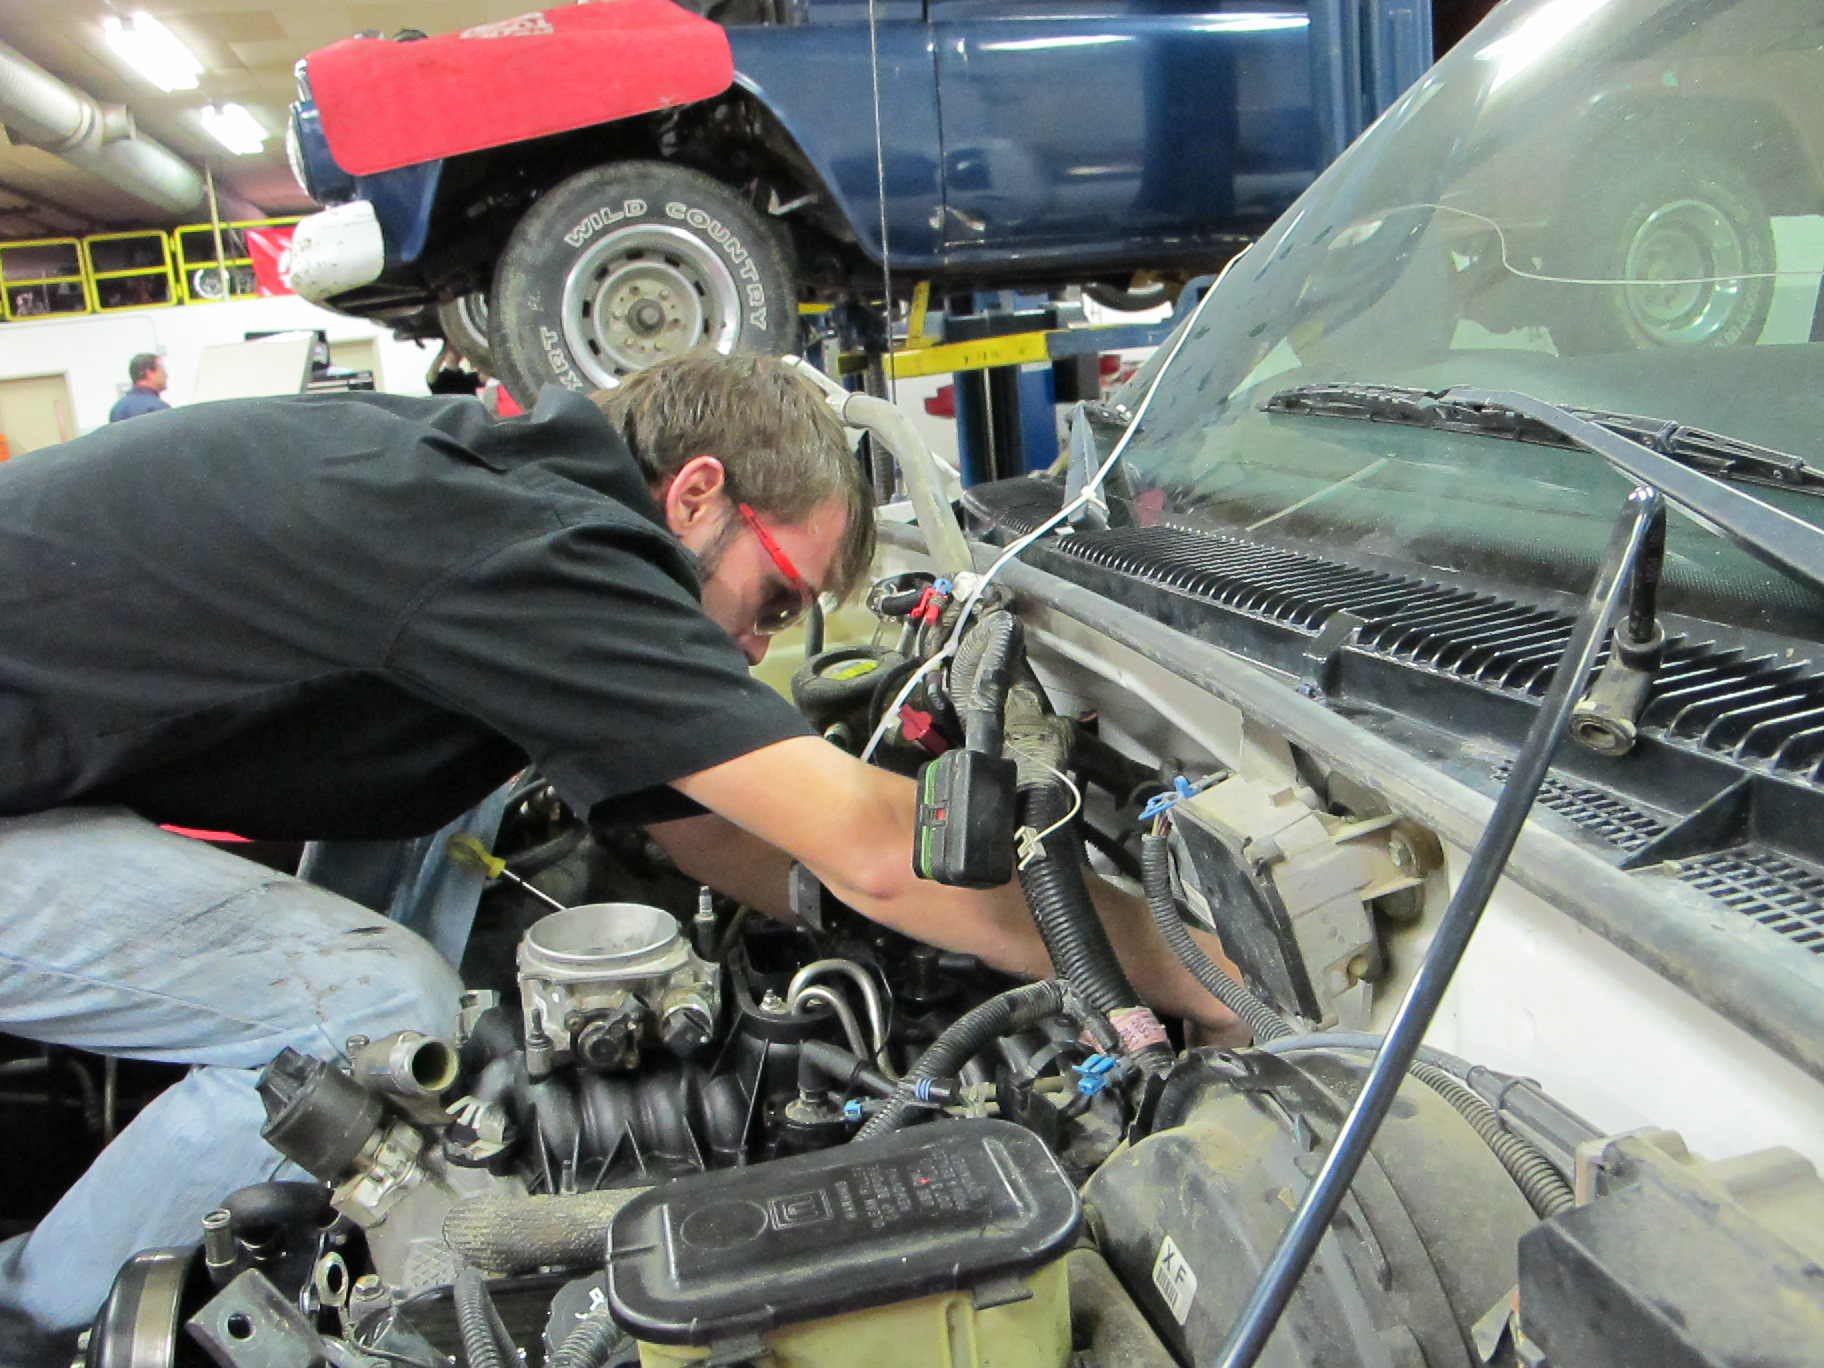 Automobile repair is one component of the 2+2 Skilled and Technical Sciences Program.